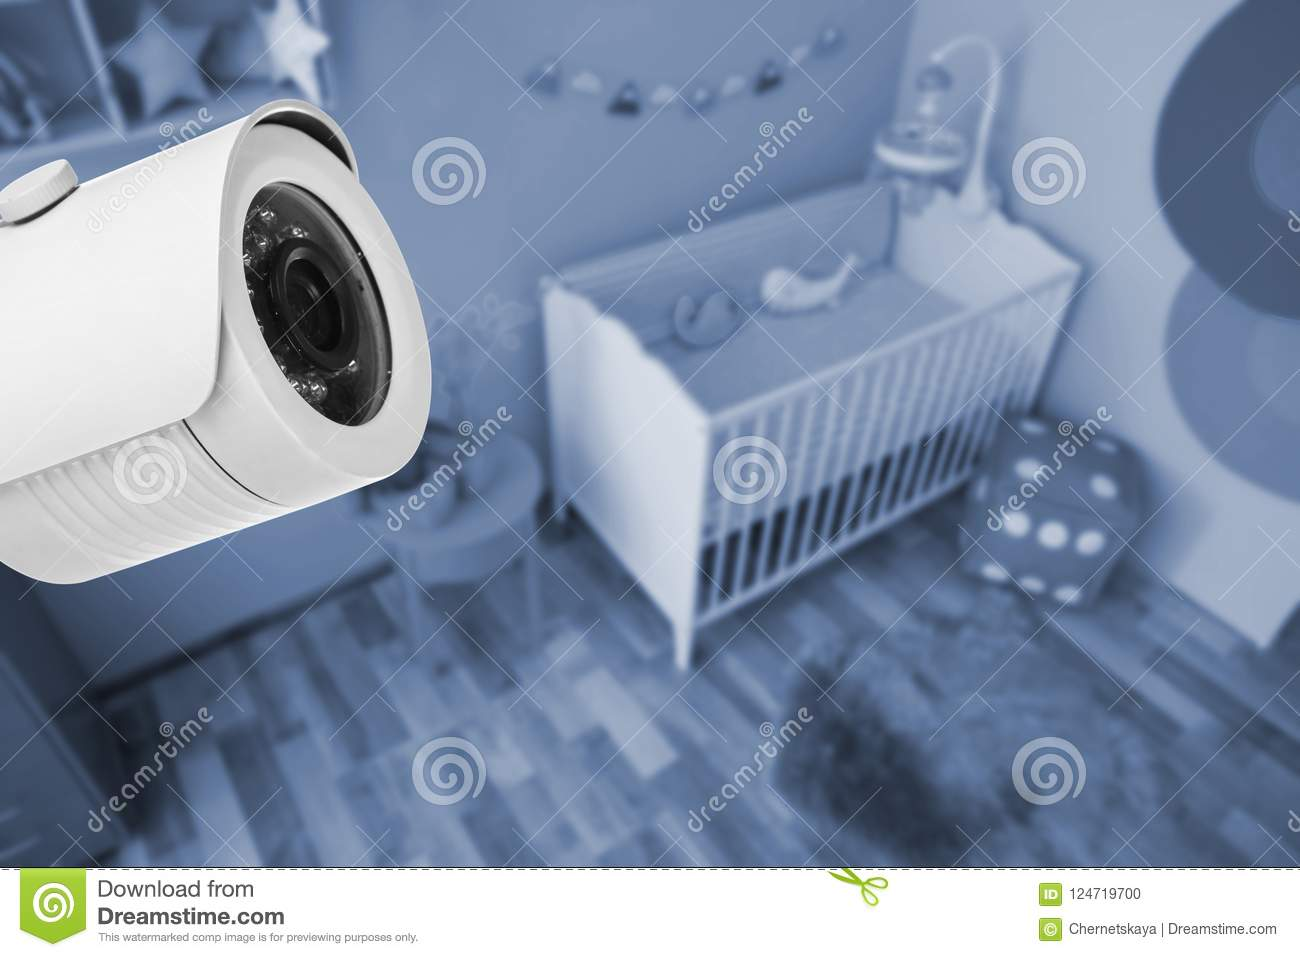 Baby Room Under CCTV Camera Surveillance Stock Photo - Image of